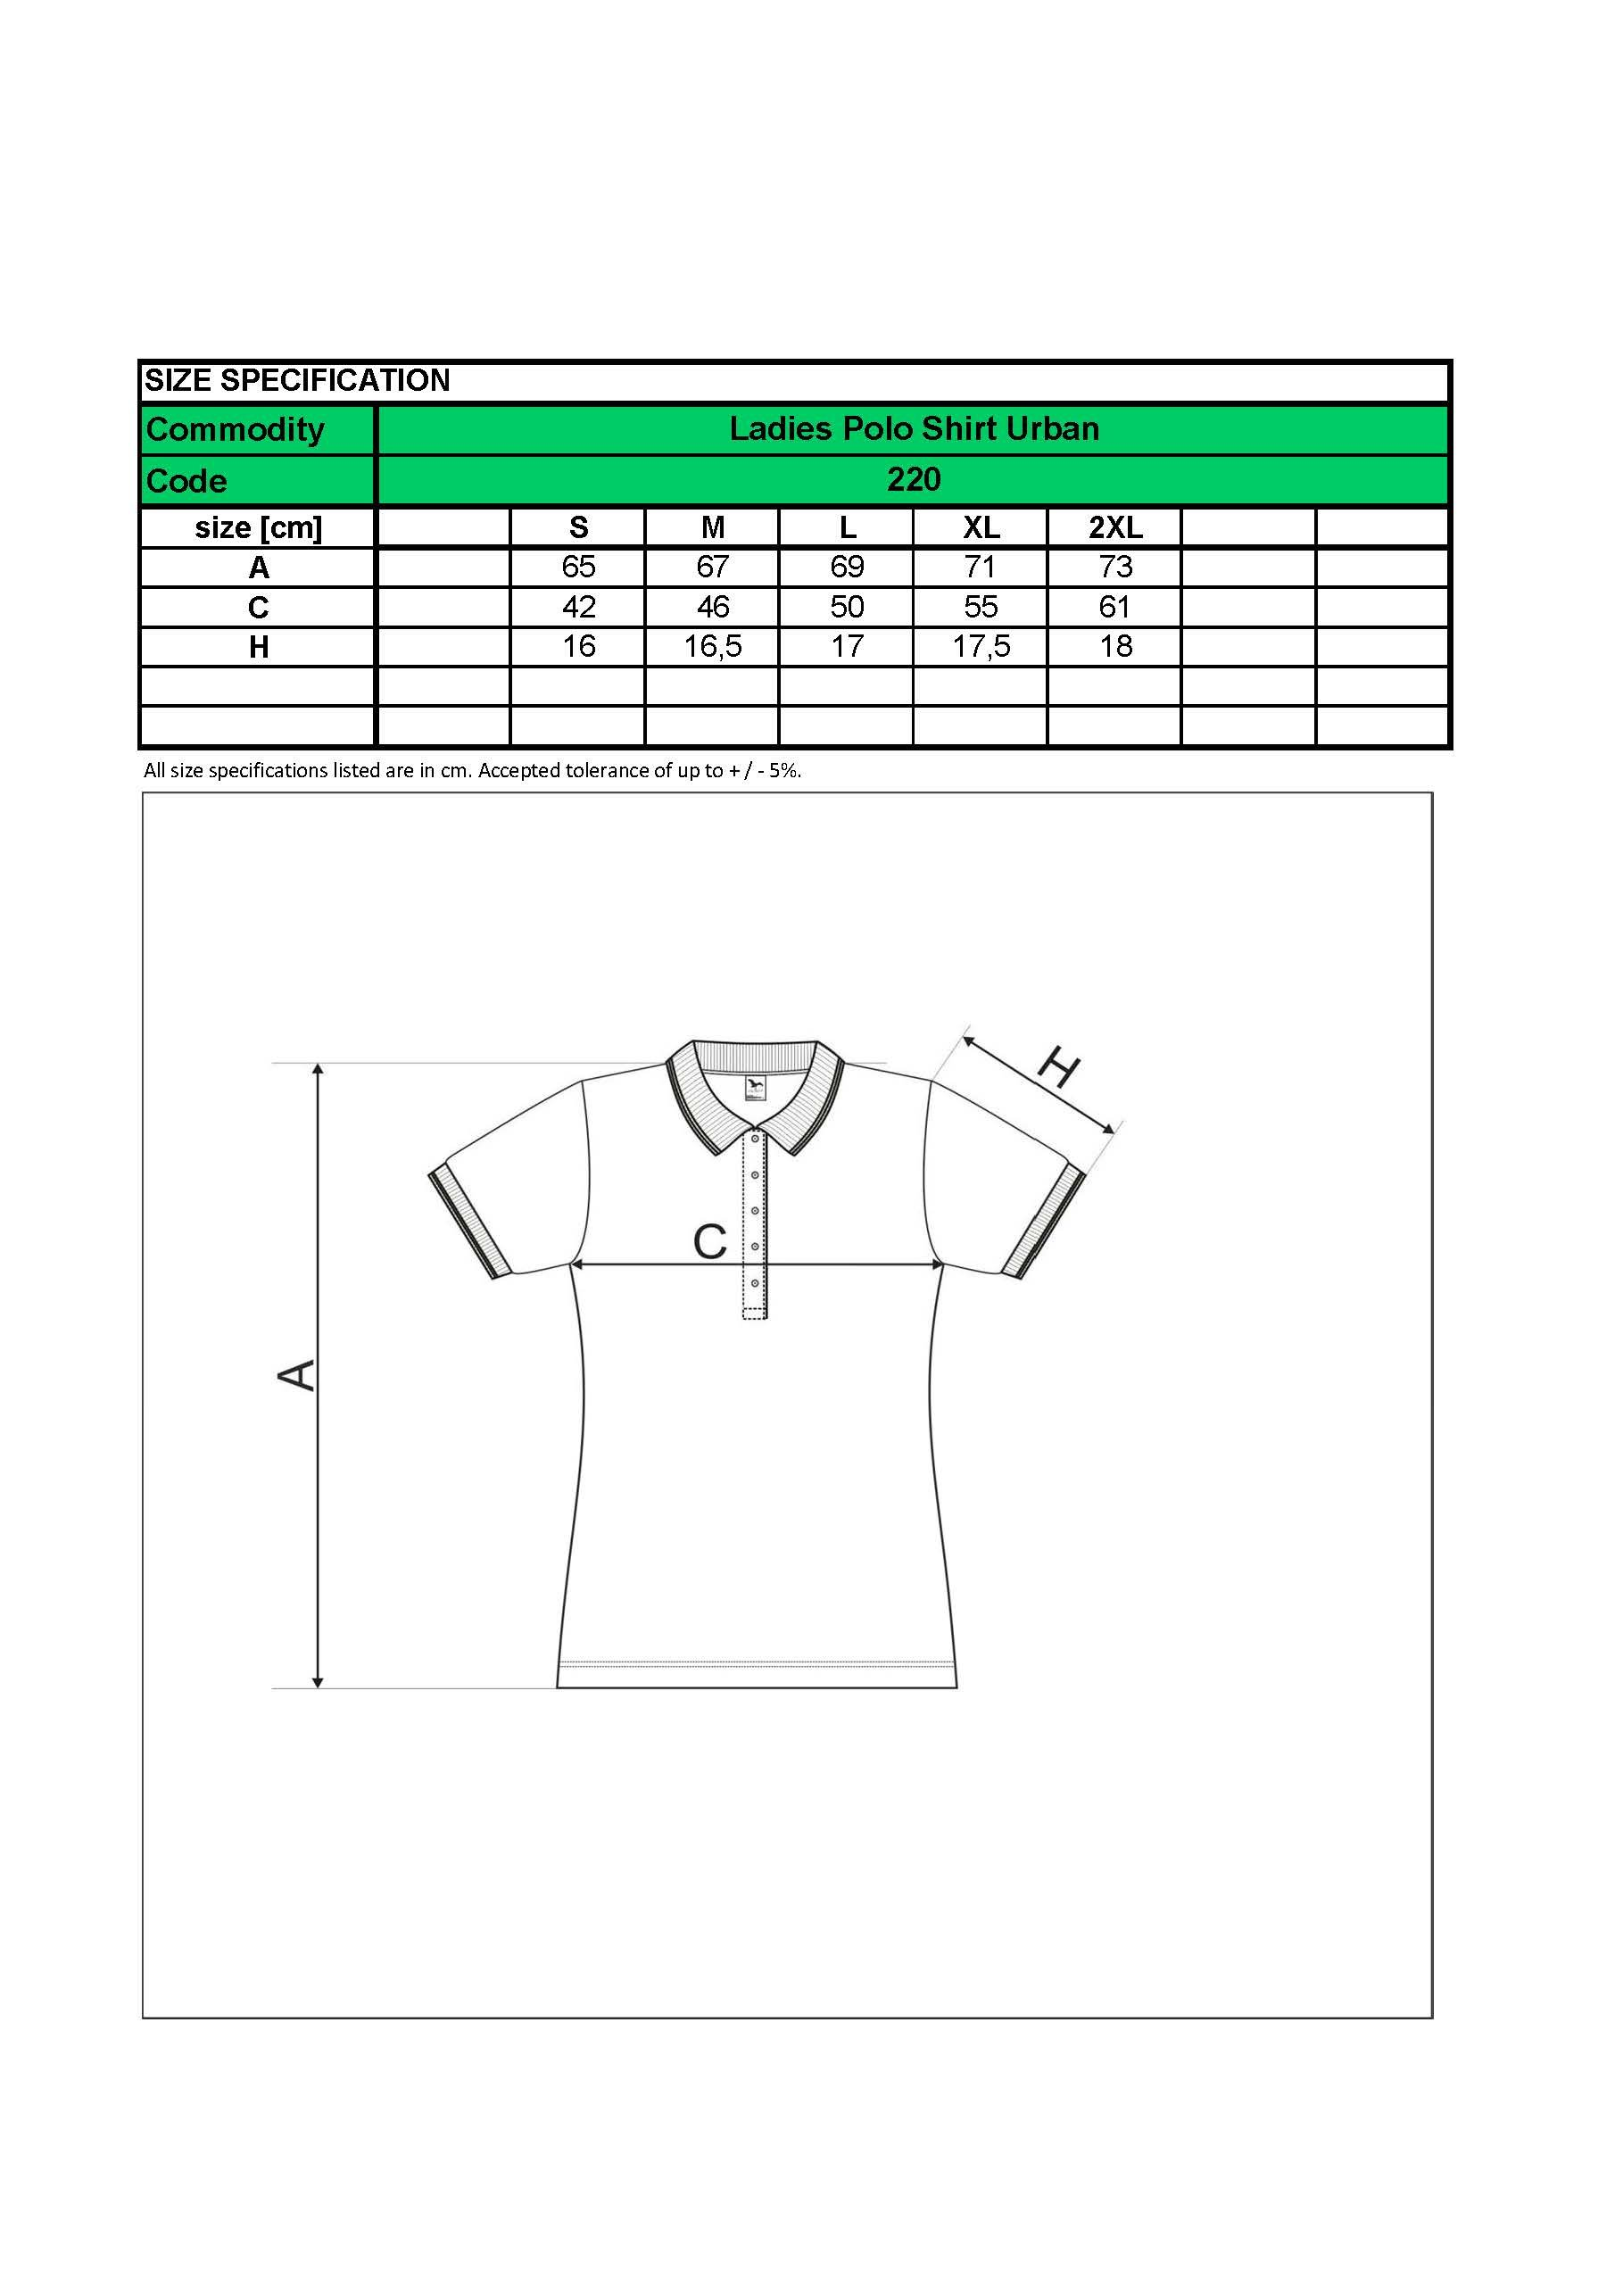 5abd67f85 ... Custom Embroidered Promotional white Ladies Polo Shirts 220 size chart  www.ontimeprint.co.